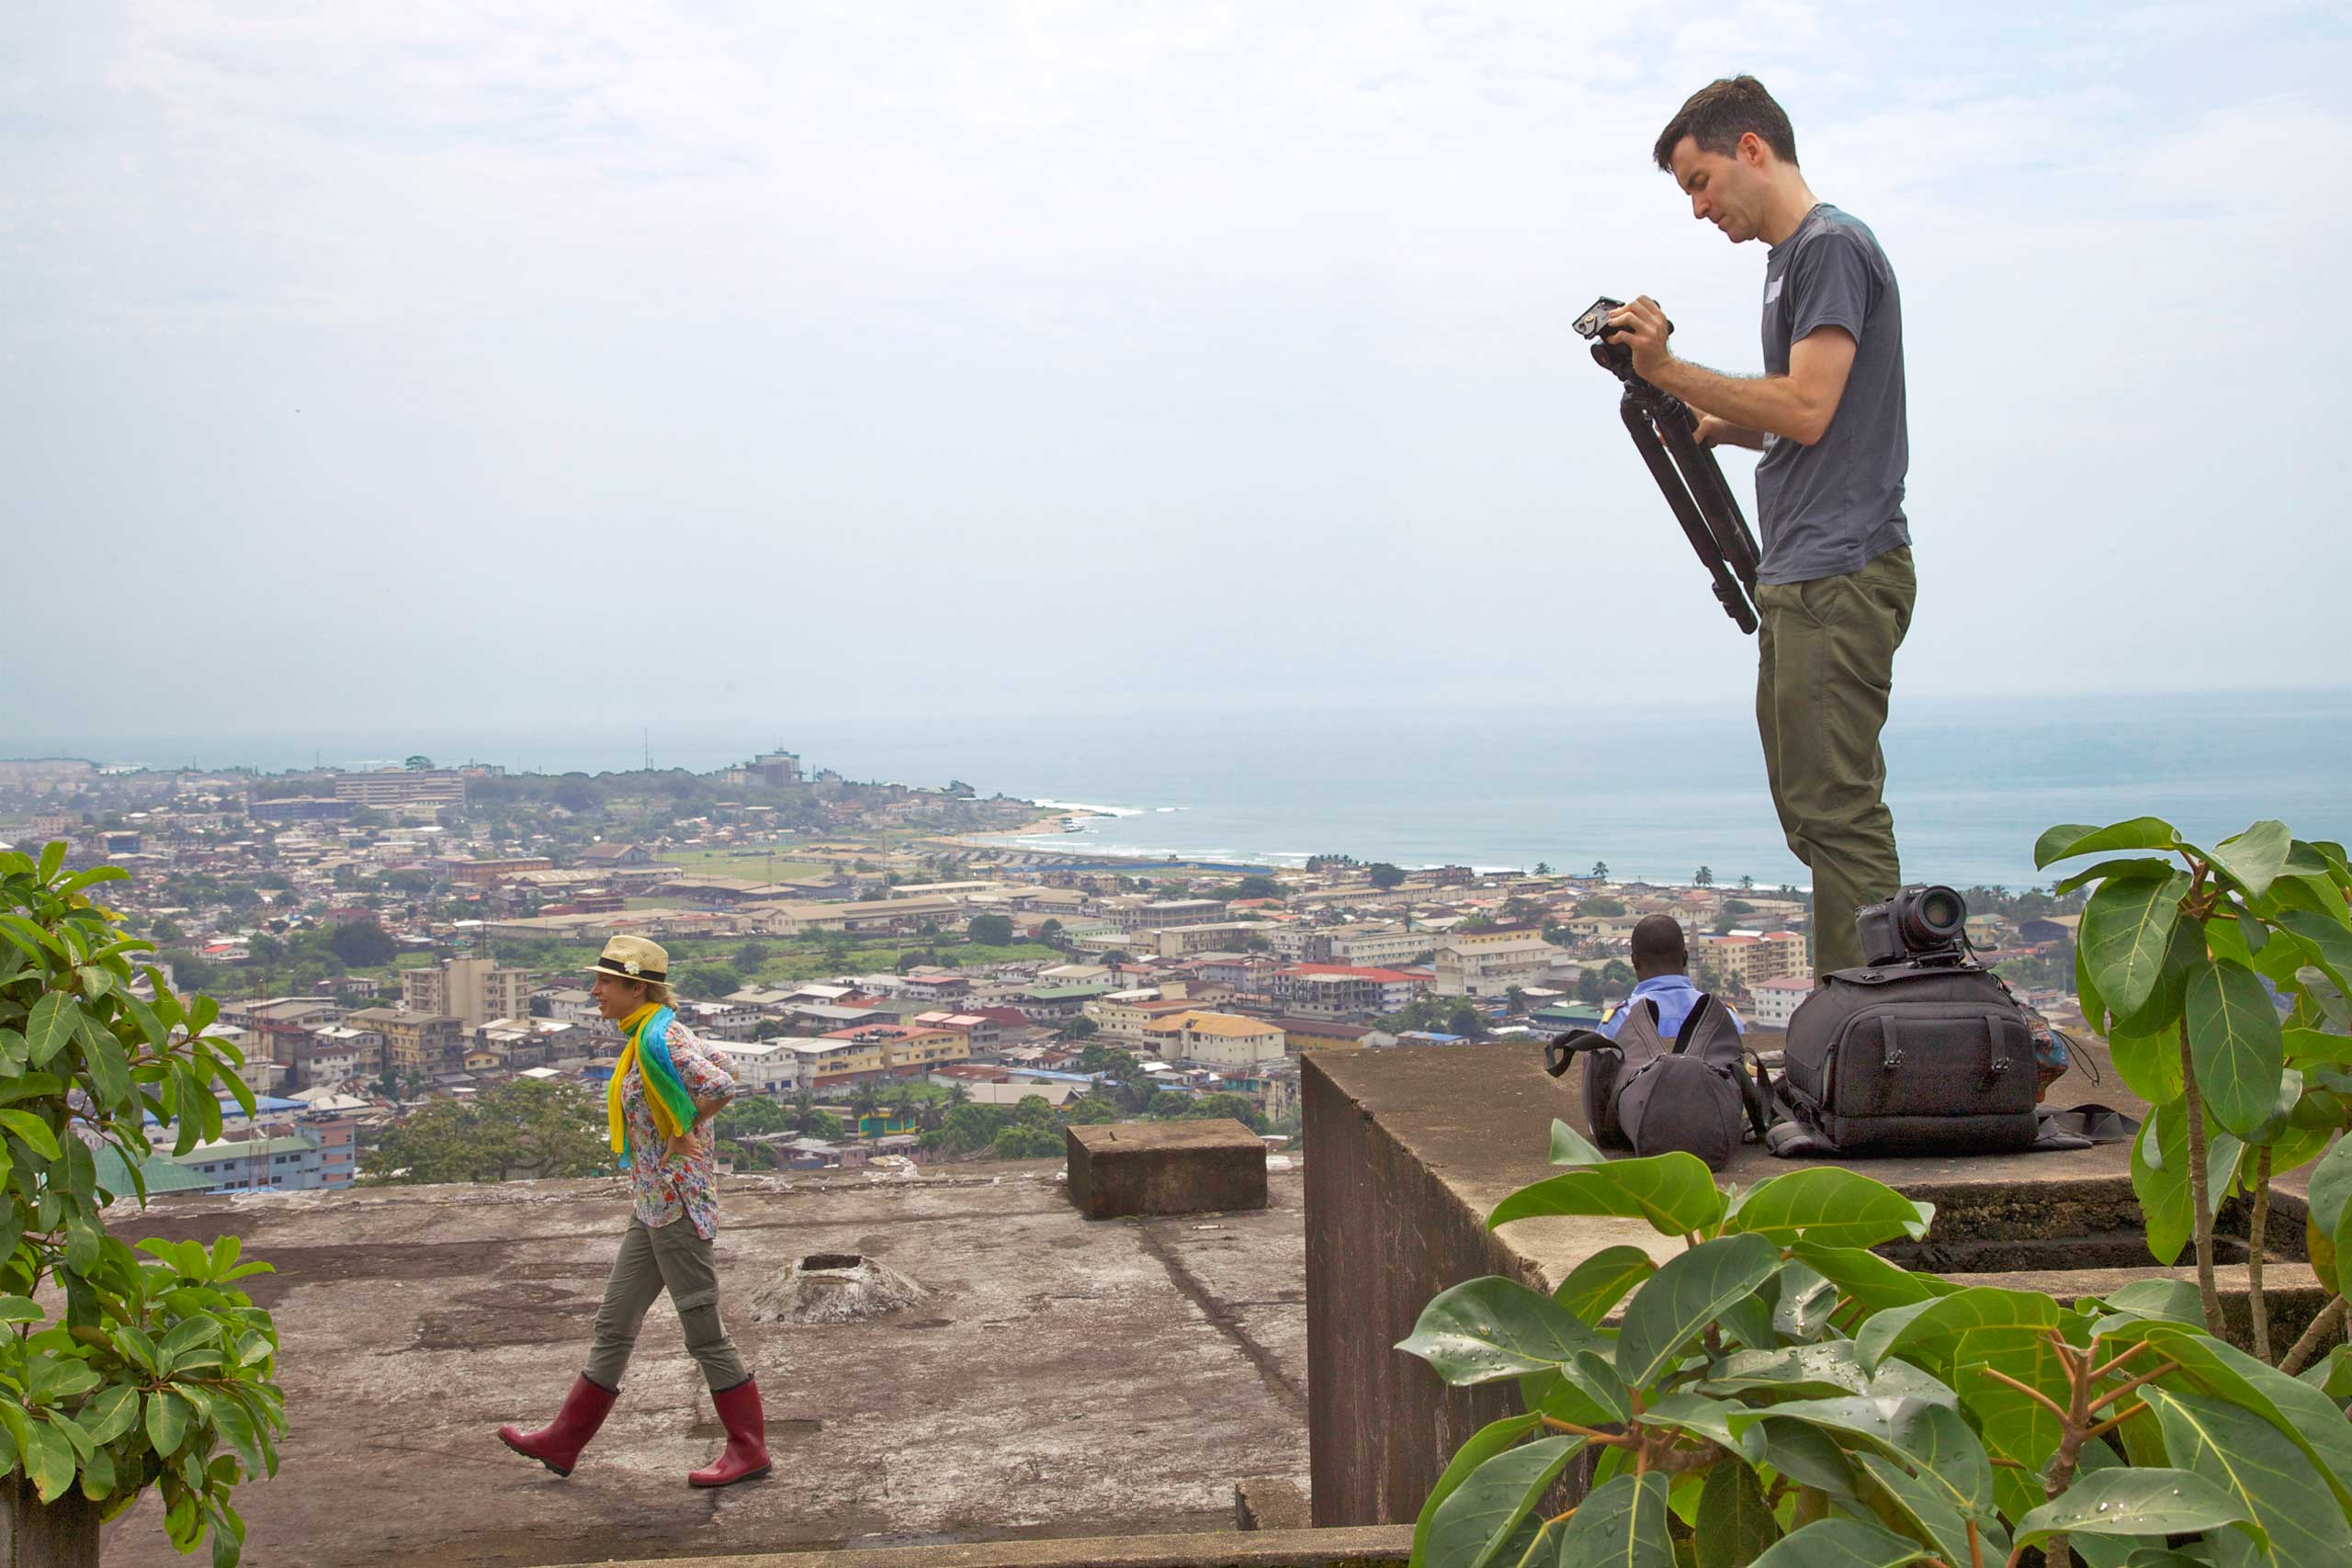 TIME's Deputy Director of Photography Paul Moakley (right) and TIME's Africa Bureau Chief Aryn Baker in Monrovia, Liberia